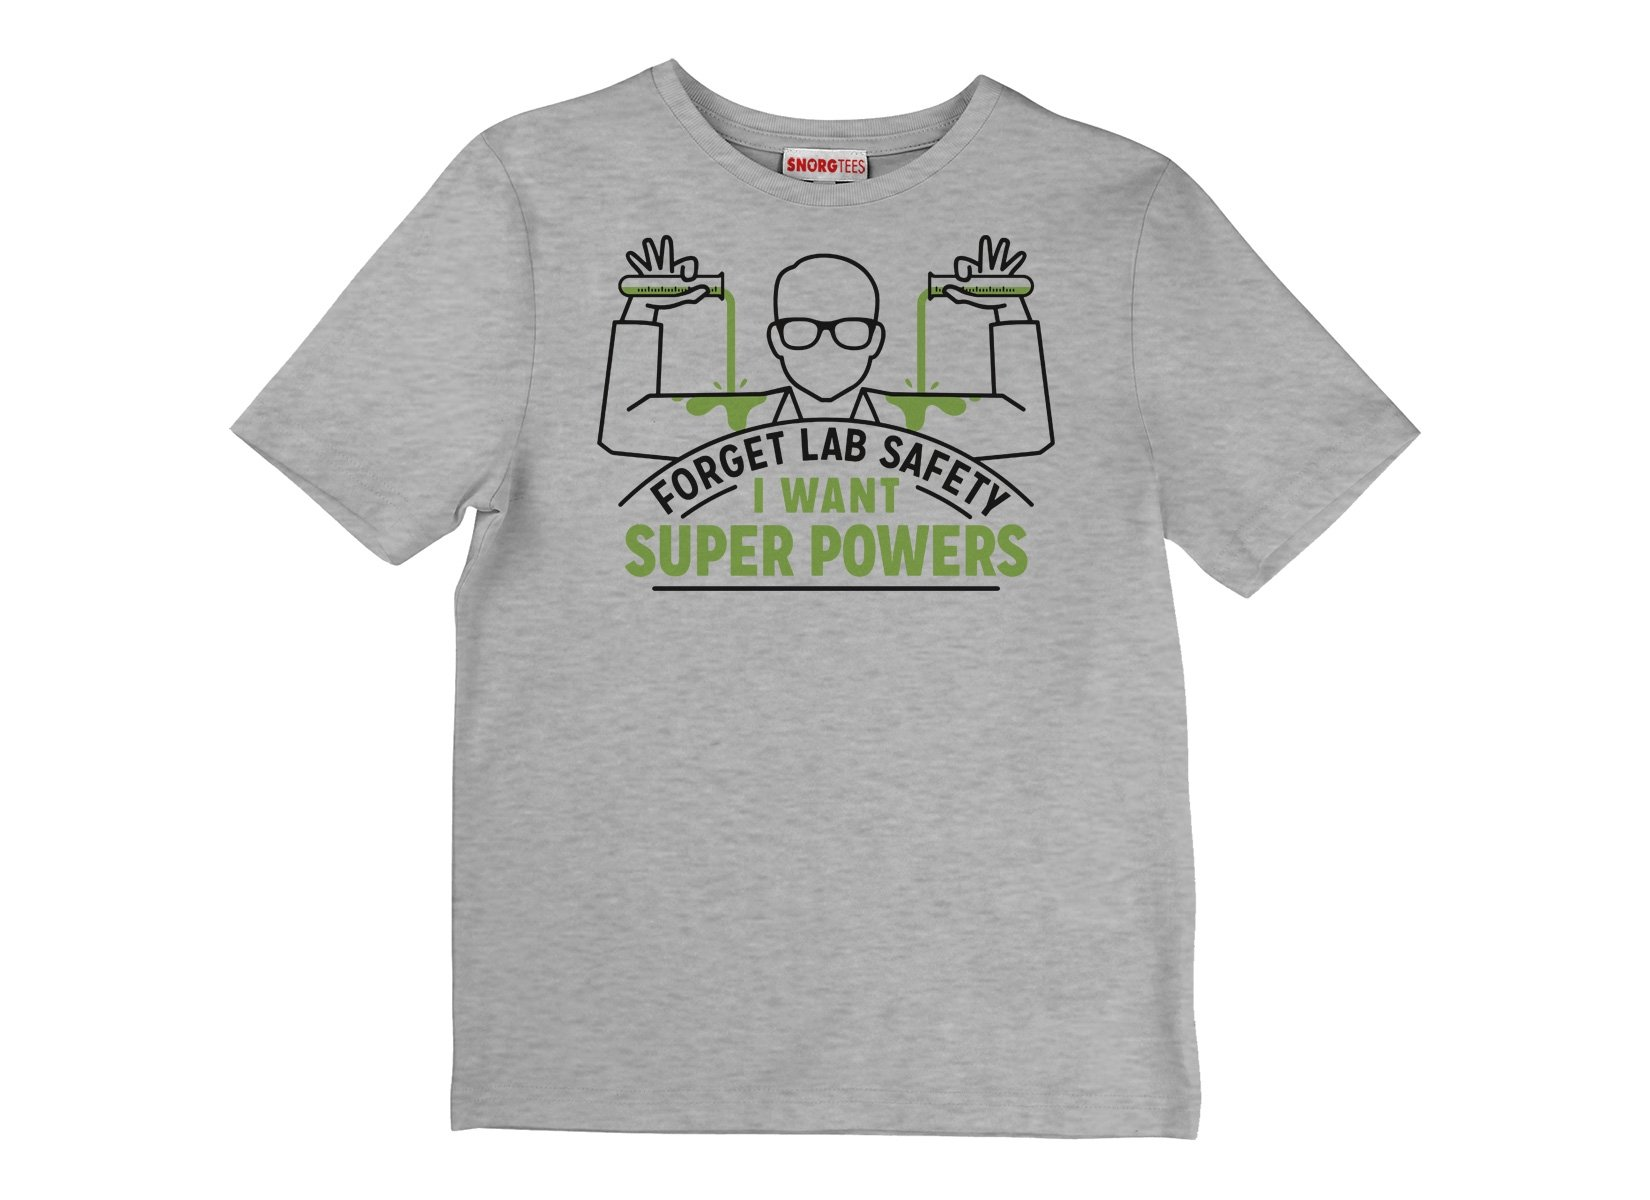 Forget Lab Safety on Kids T-Shirt